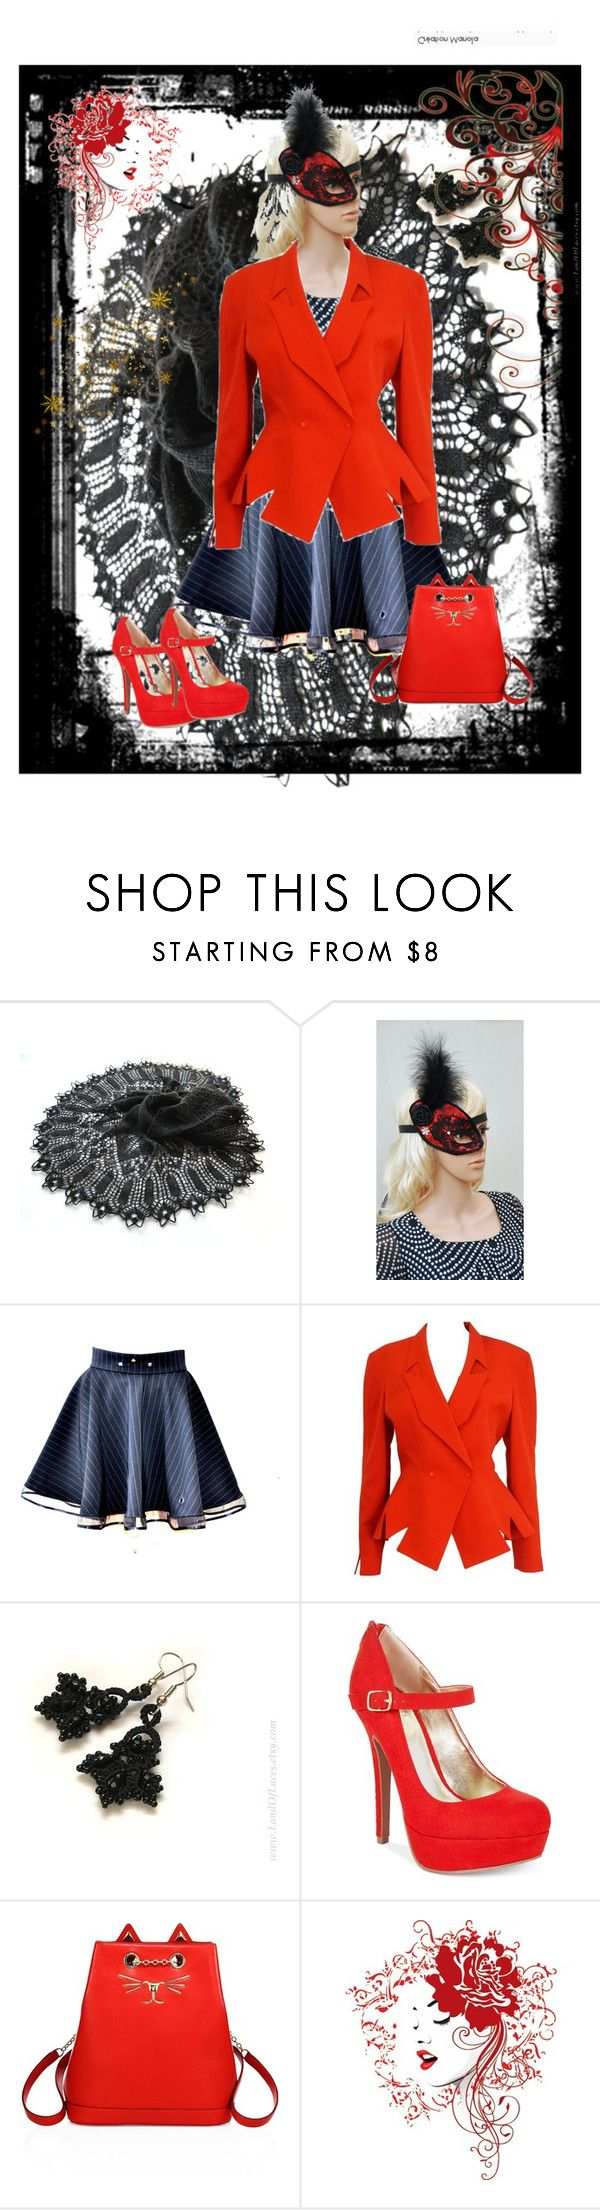 """""""One eye mask"""" by black-passion ❤ liked on Polyvore featuring Masquerade, Thierry Mugler, Material Girl and Charlotte Olympia"""